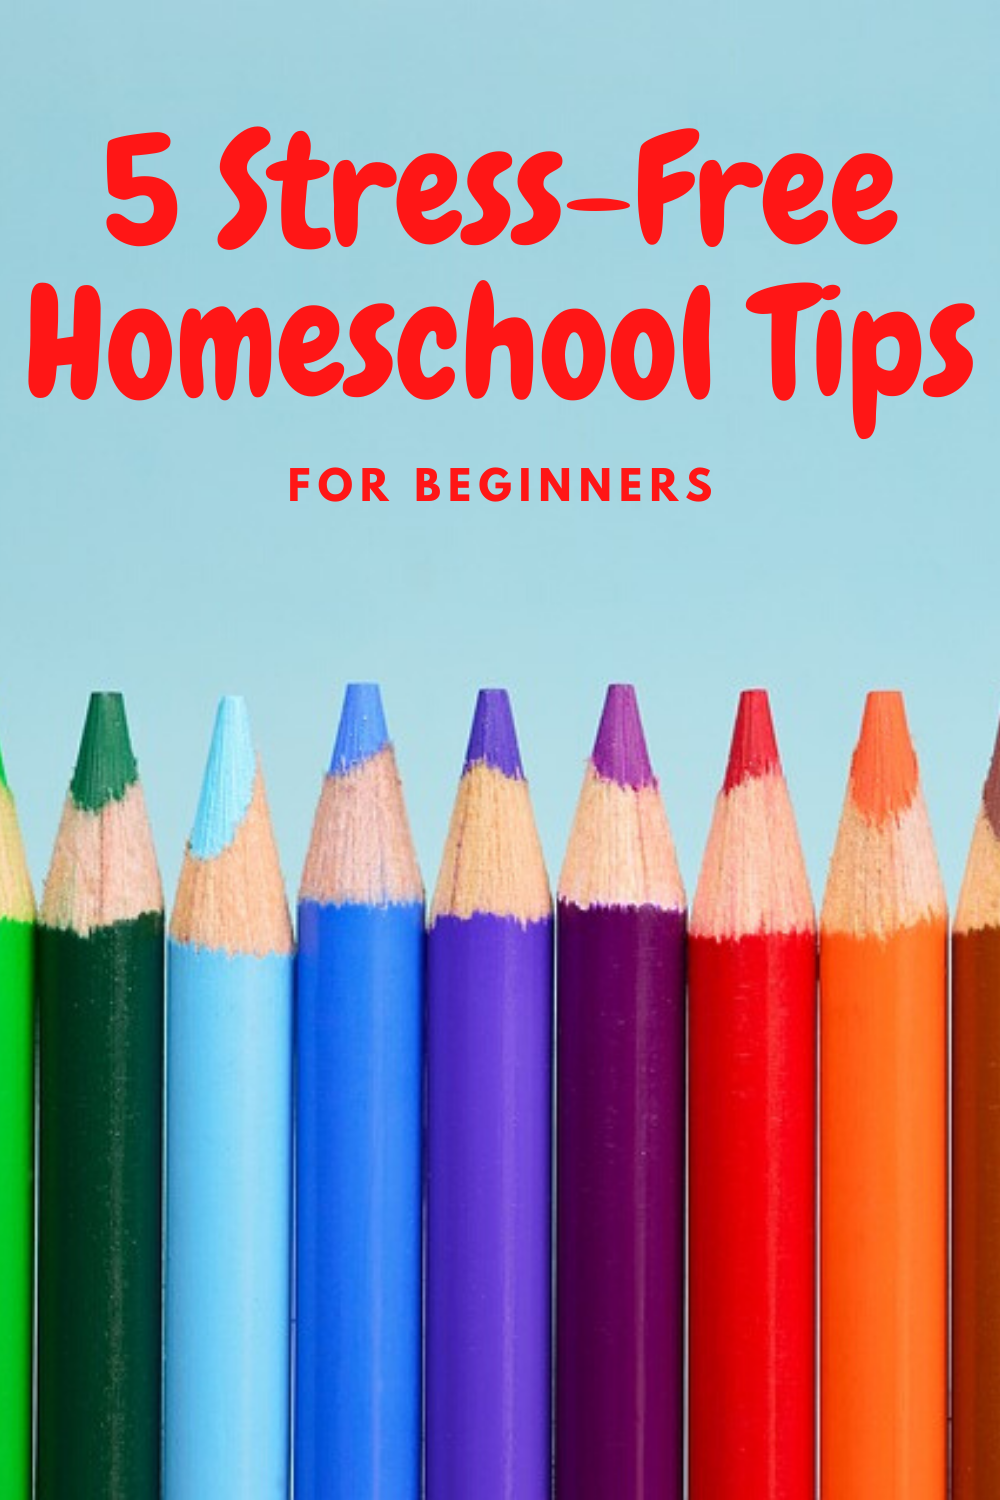 """Are you apart of the sudden rush of """"new"""" homeschoolers"""" Check out these stress free homeschool tips for beginners! They'll make life so much easier!"""